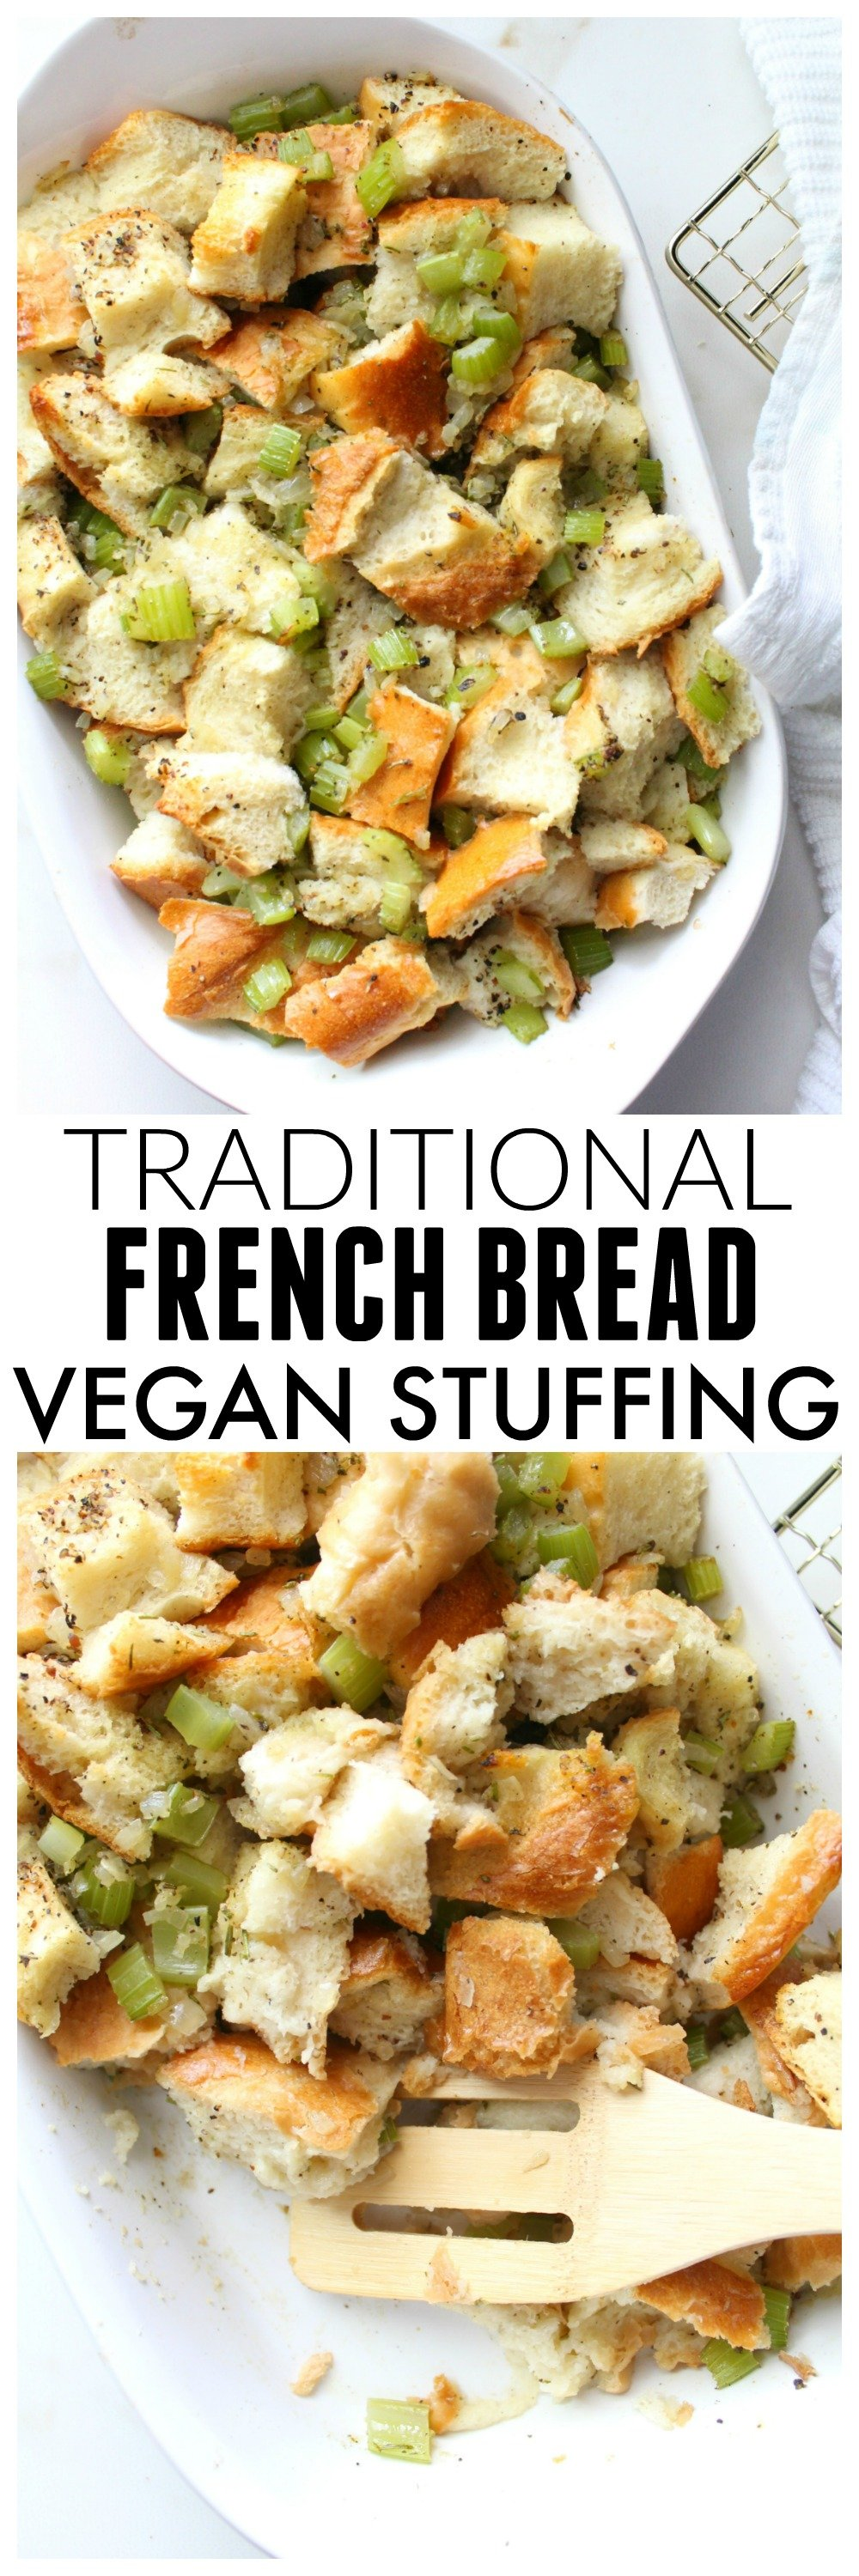 ThisTraditional French Bread Vegan Stuffing is easy to make and has all of the holiday flavors you've grown up loving but vegan-ized   ThisSavoryVegan.com #vegan #thanksgiving #veganthanksgiving